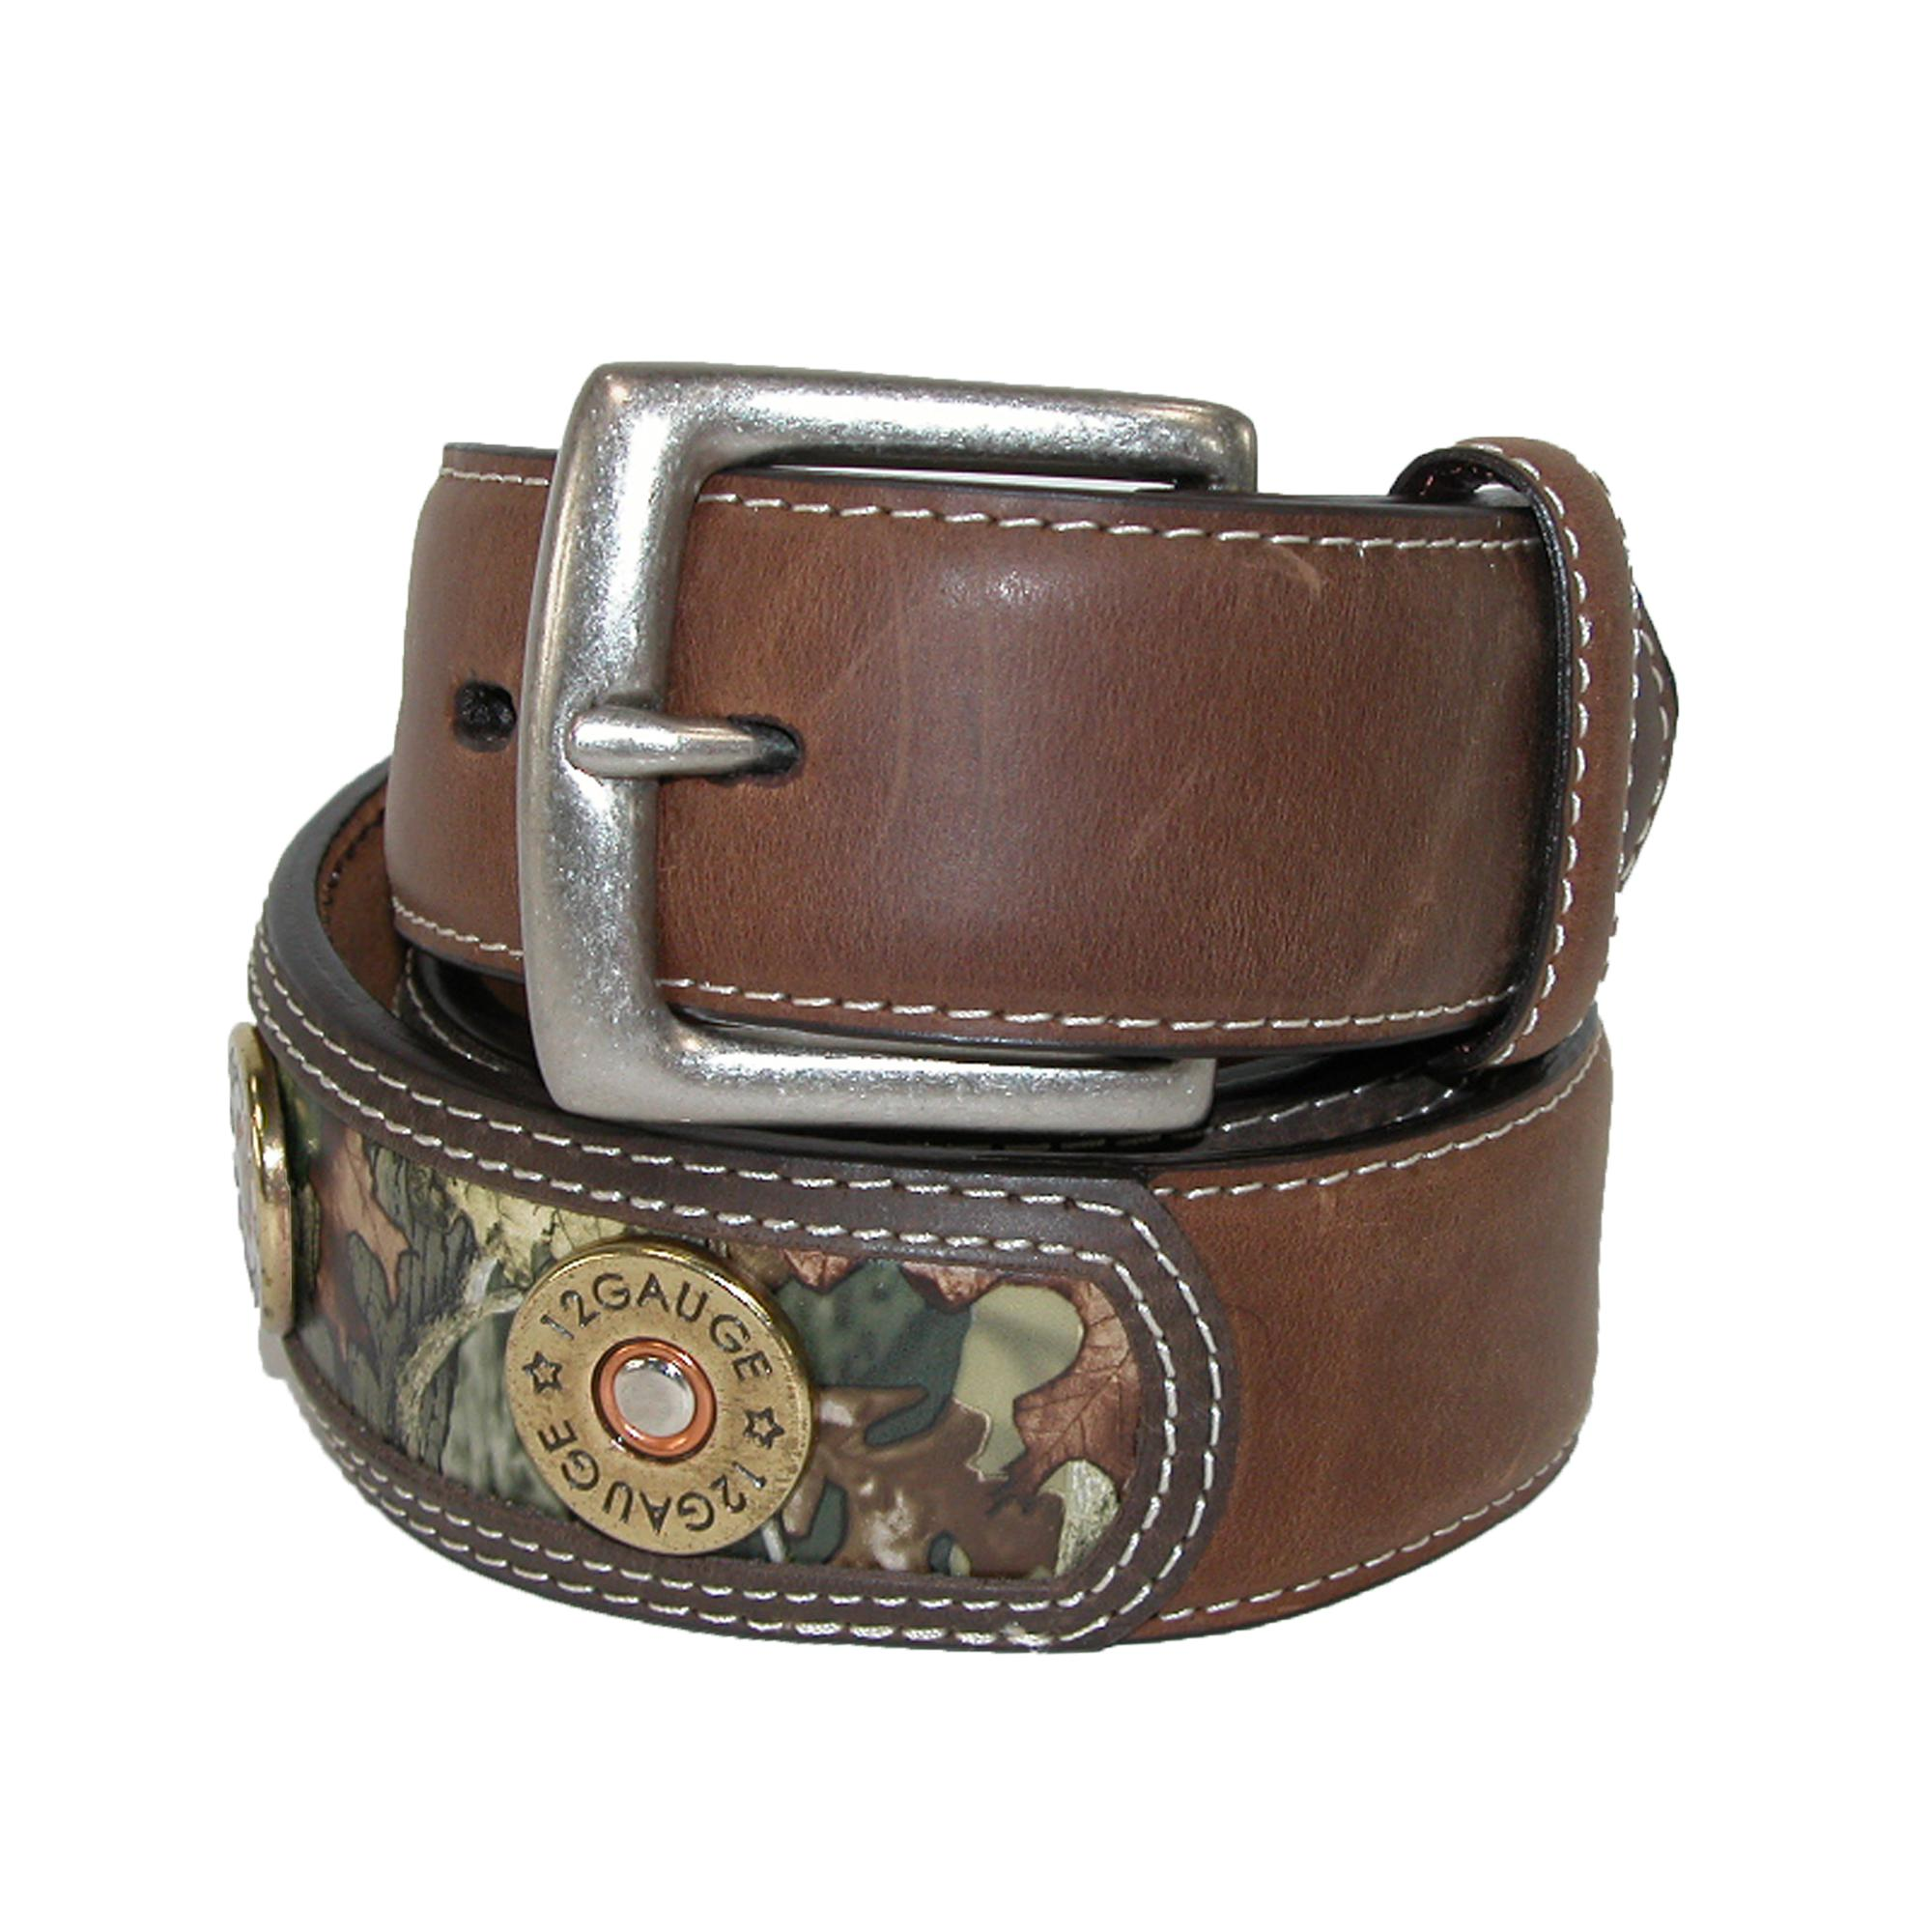 3 D Belt Company Mens Leather Belt With Shotgun Shells And Camo Inlay